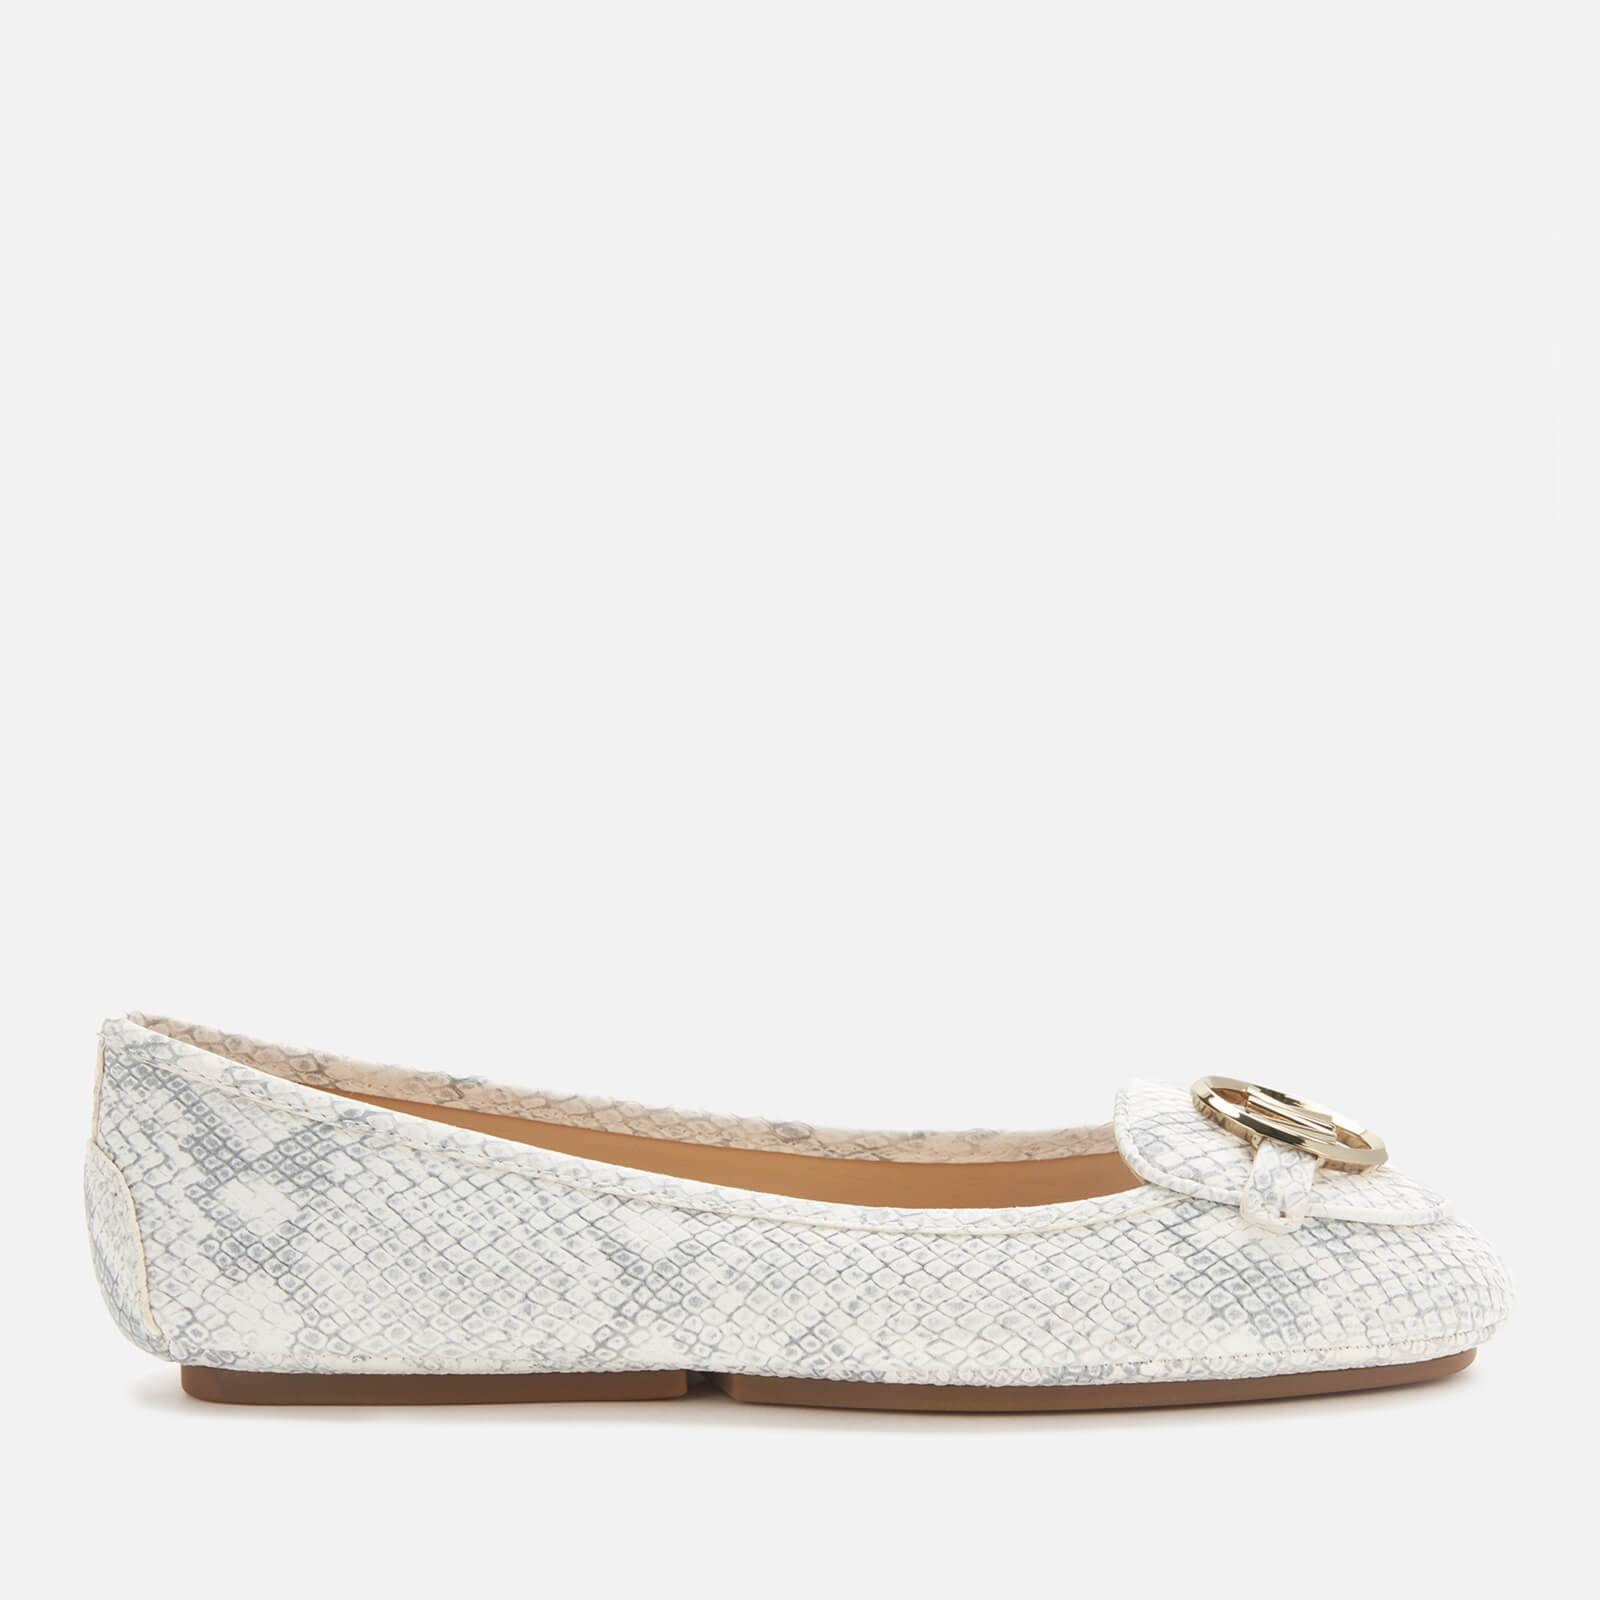 MICHAEL MICHAEL KORS Women's Lillie Moc Python Embossed Leather Flats - Natural - UK 3/US 6